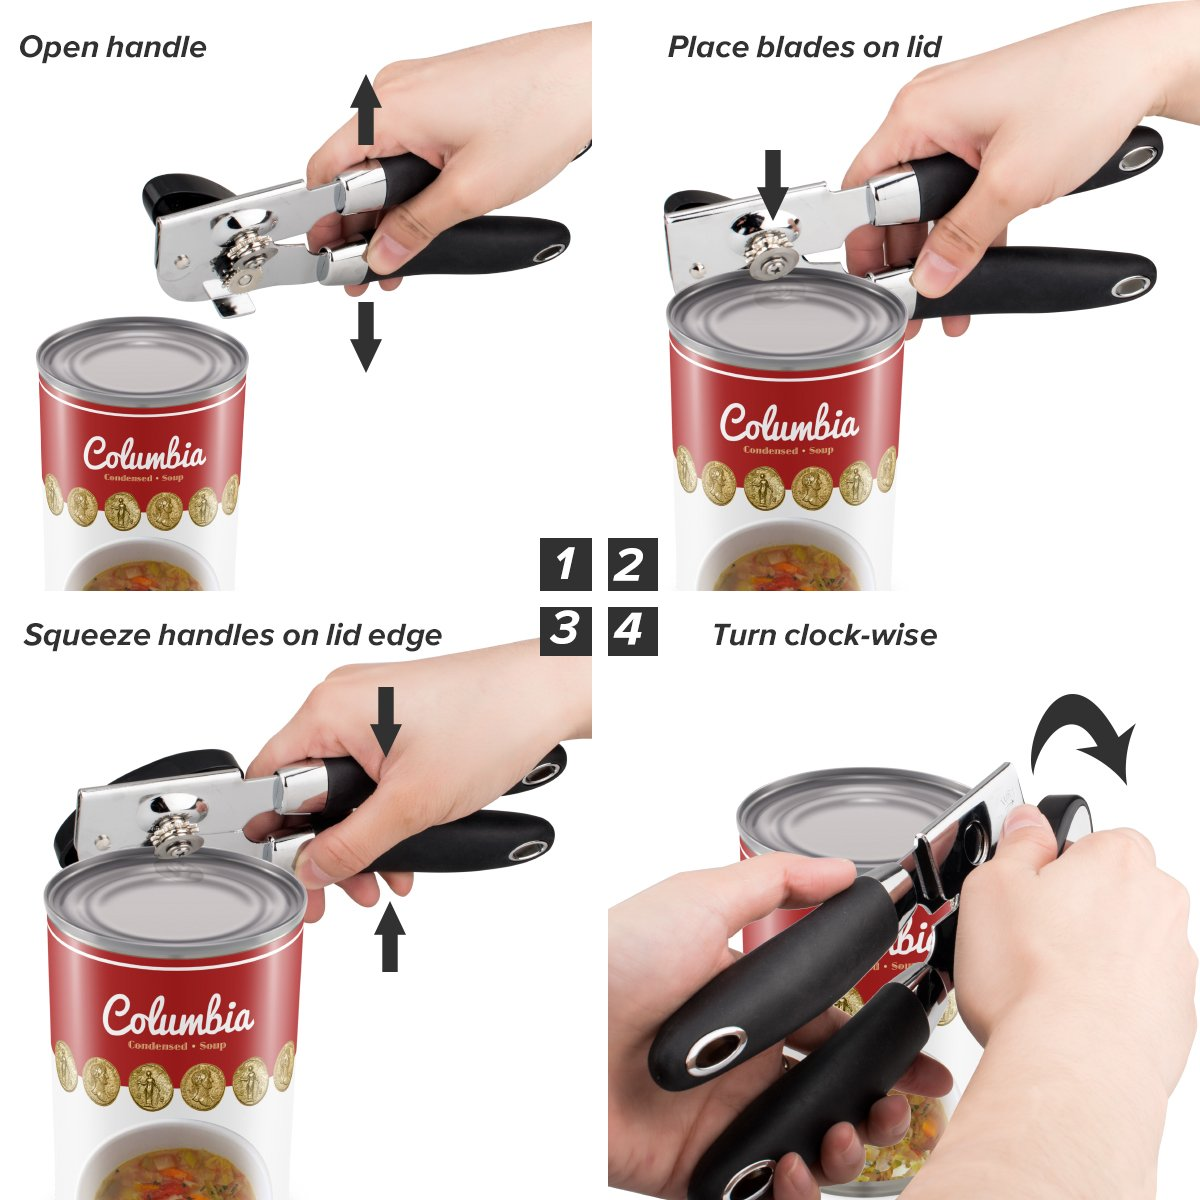 TangN Can Opener,Smooth Edge Manual Can Opener,Sharp and Hard Stainless Steel Cutting Edge, Comfortable Ergonomic Handle Opener